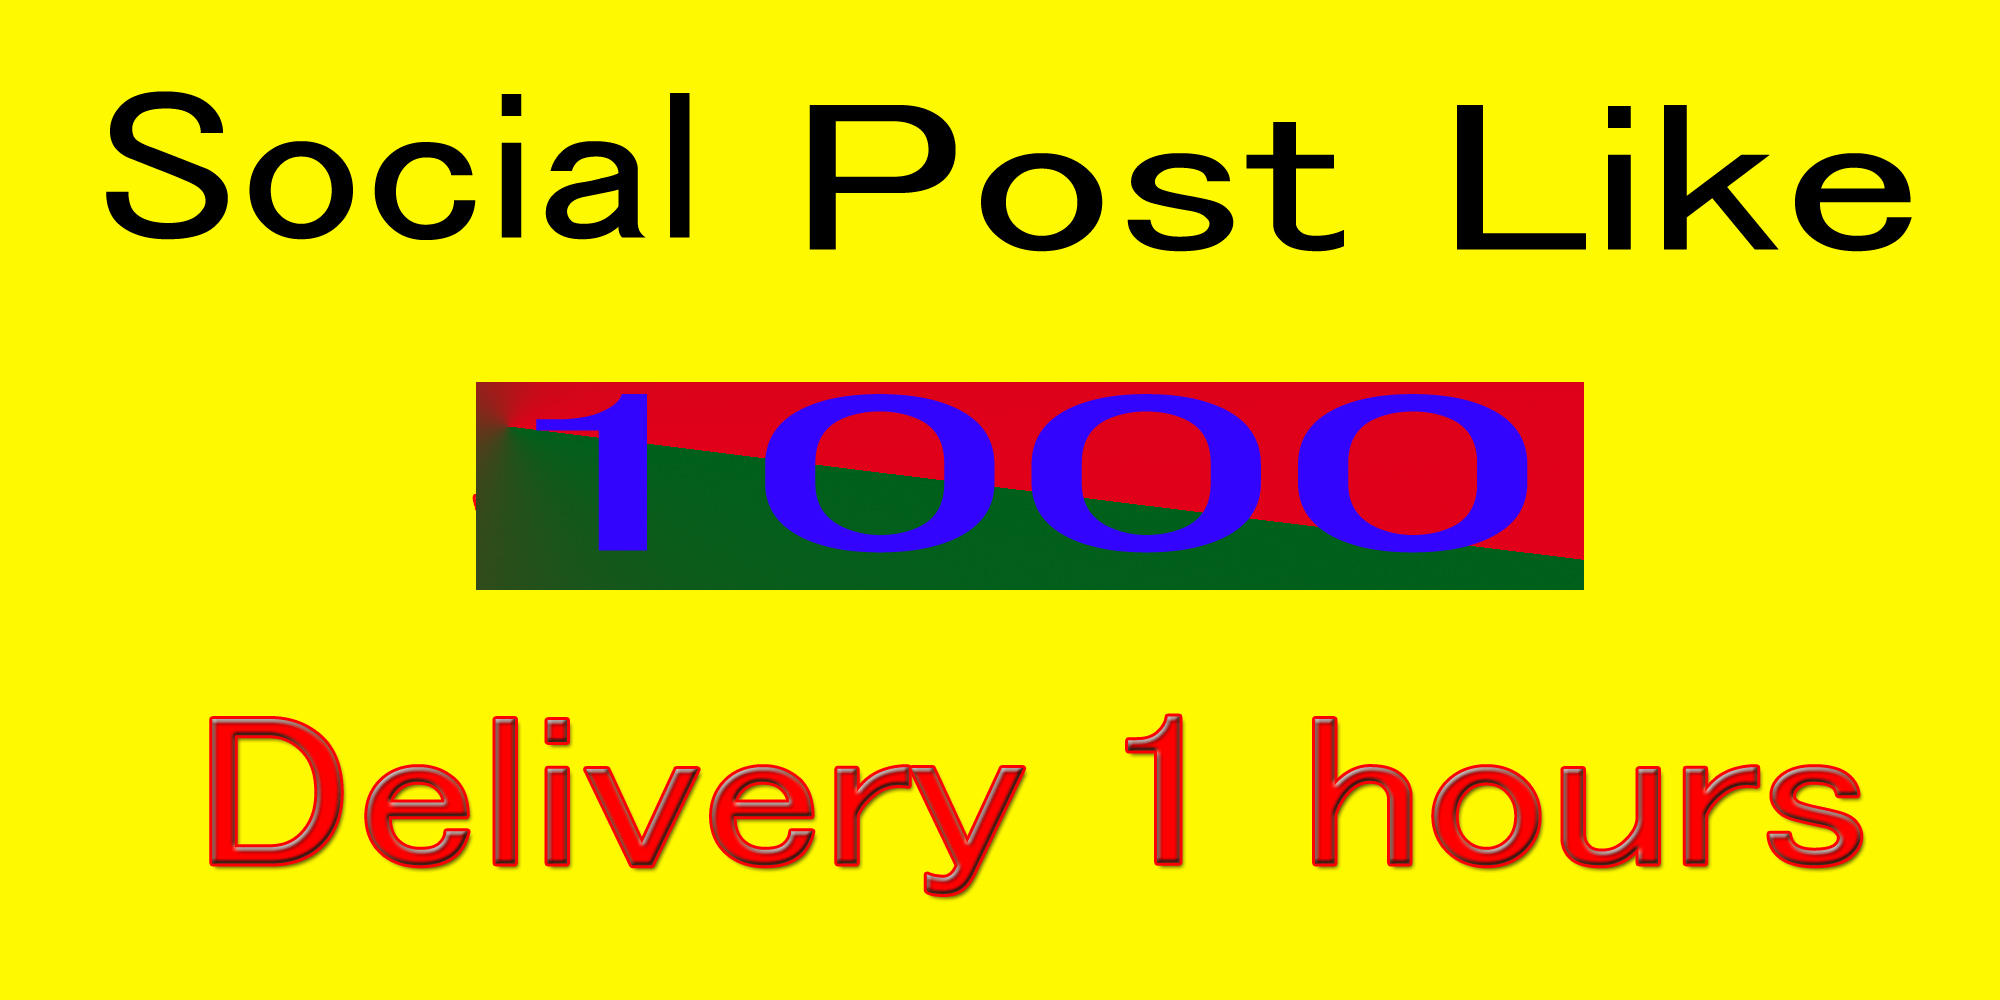 Instantly 1000- 1200 Social Pictures Post Promotion and Marketing in 1 mintus delivery